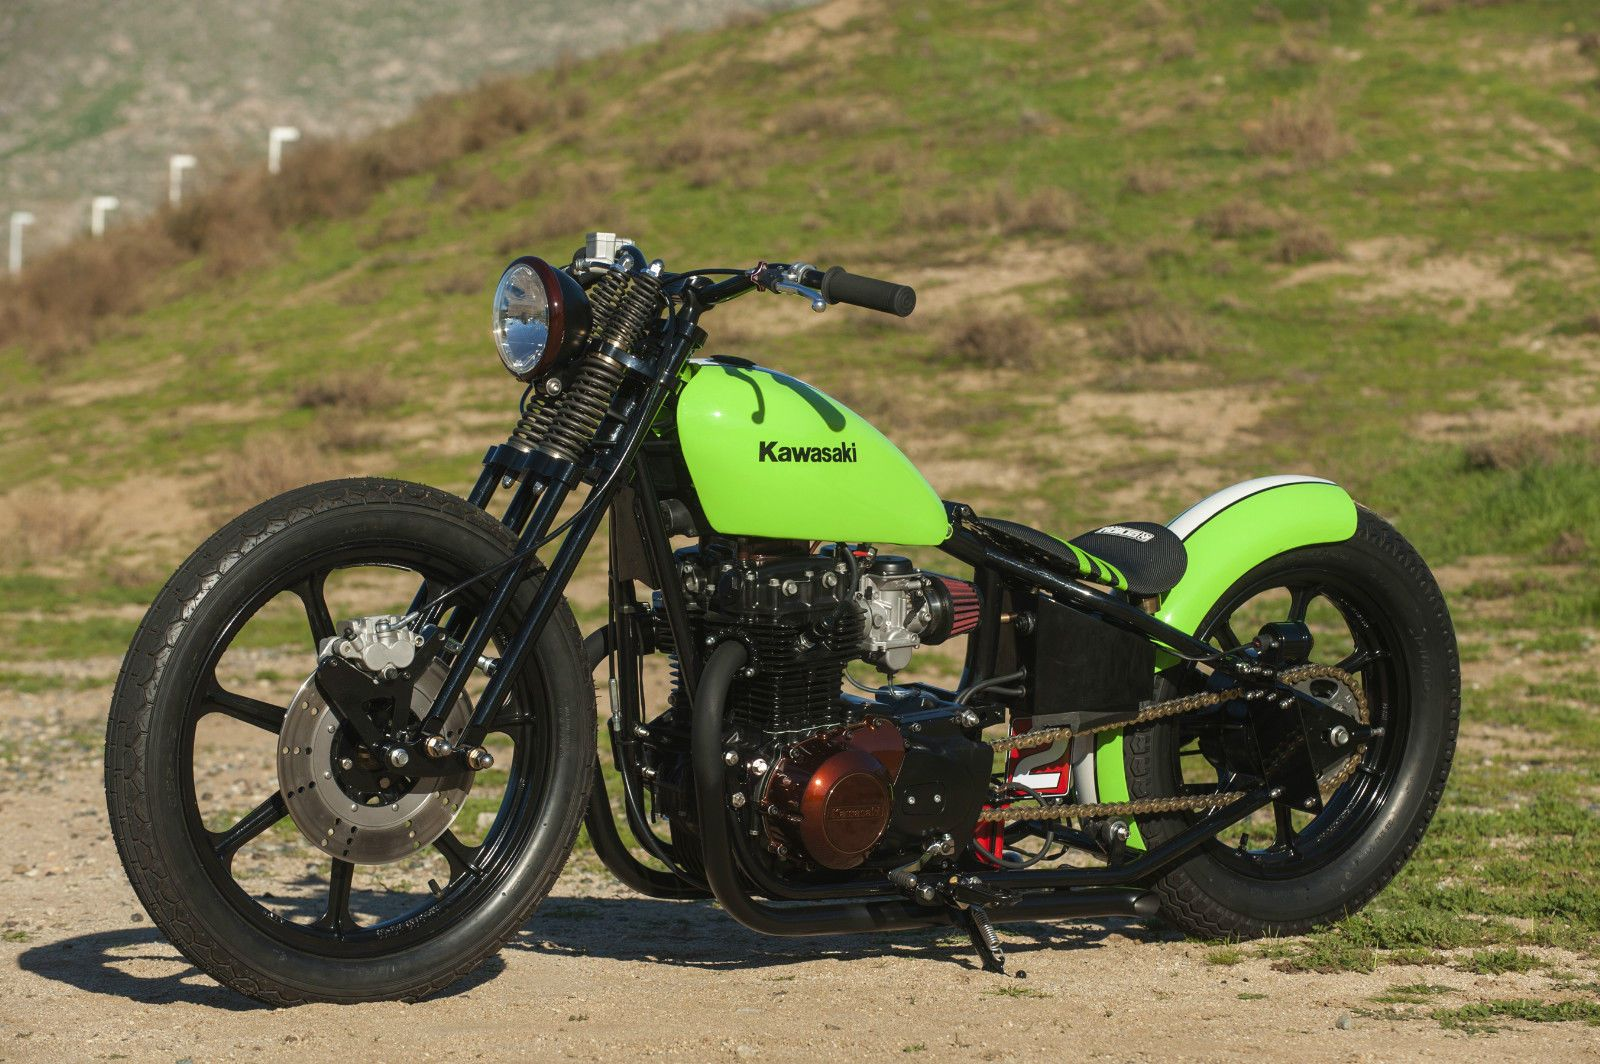 1981 Kawasaki KZ440 LTD Bobber | Metric customs | Bobber